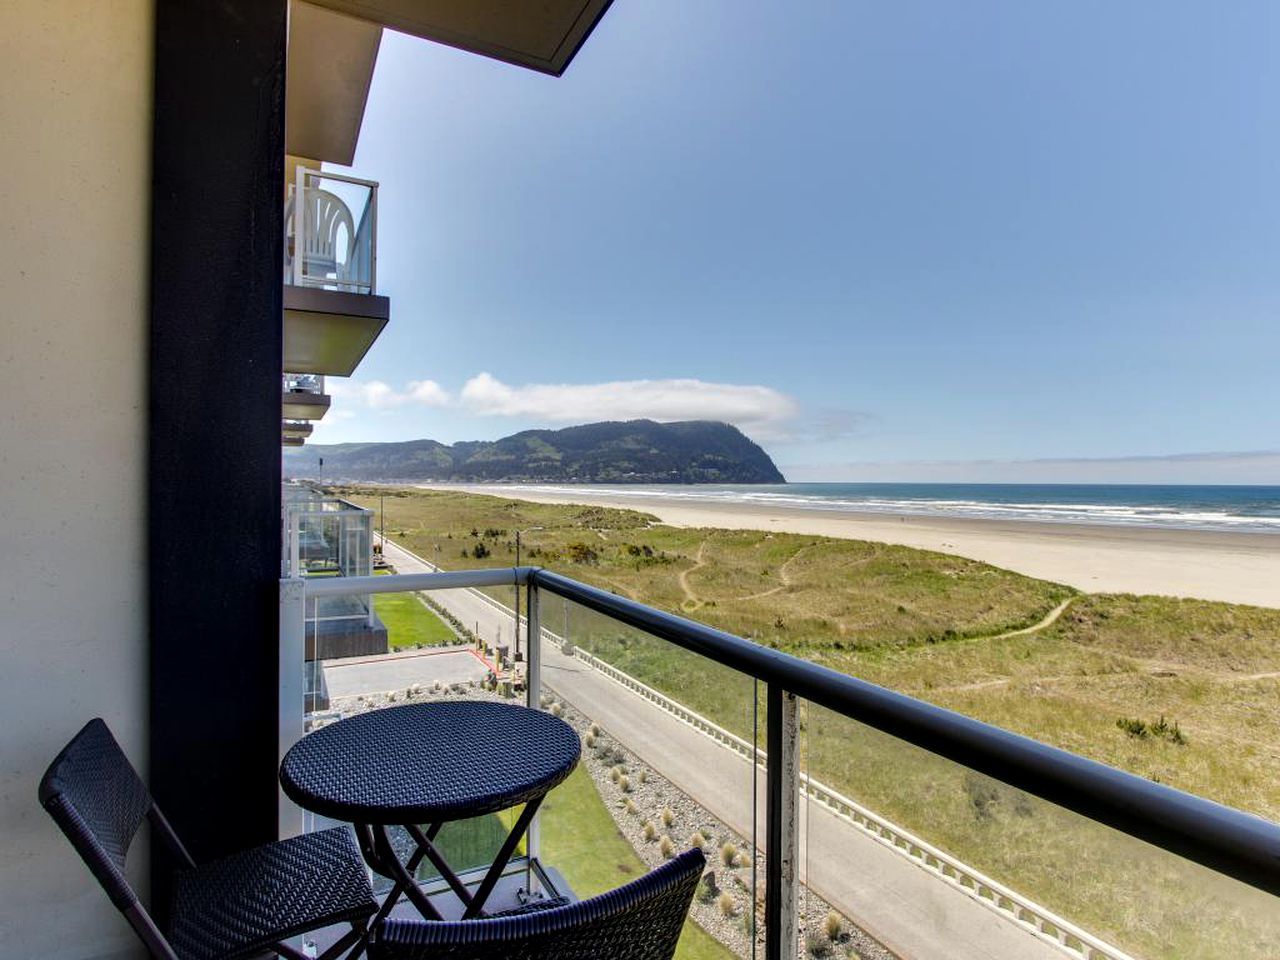 Nature Lodges (Seaside, Oregon, United States)